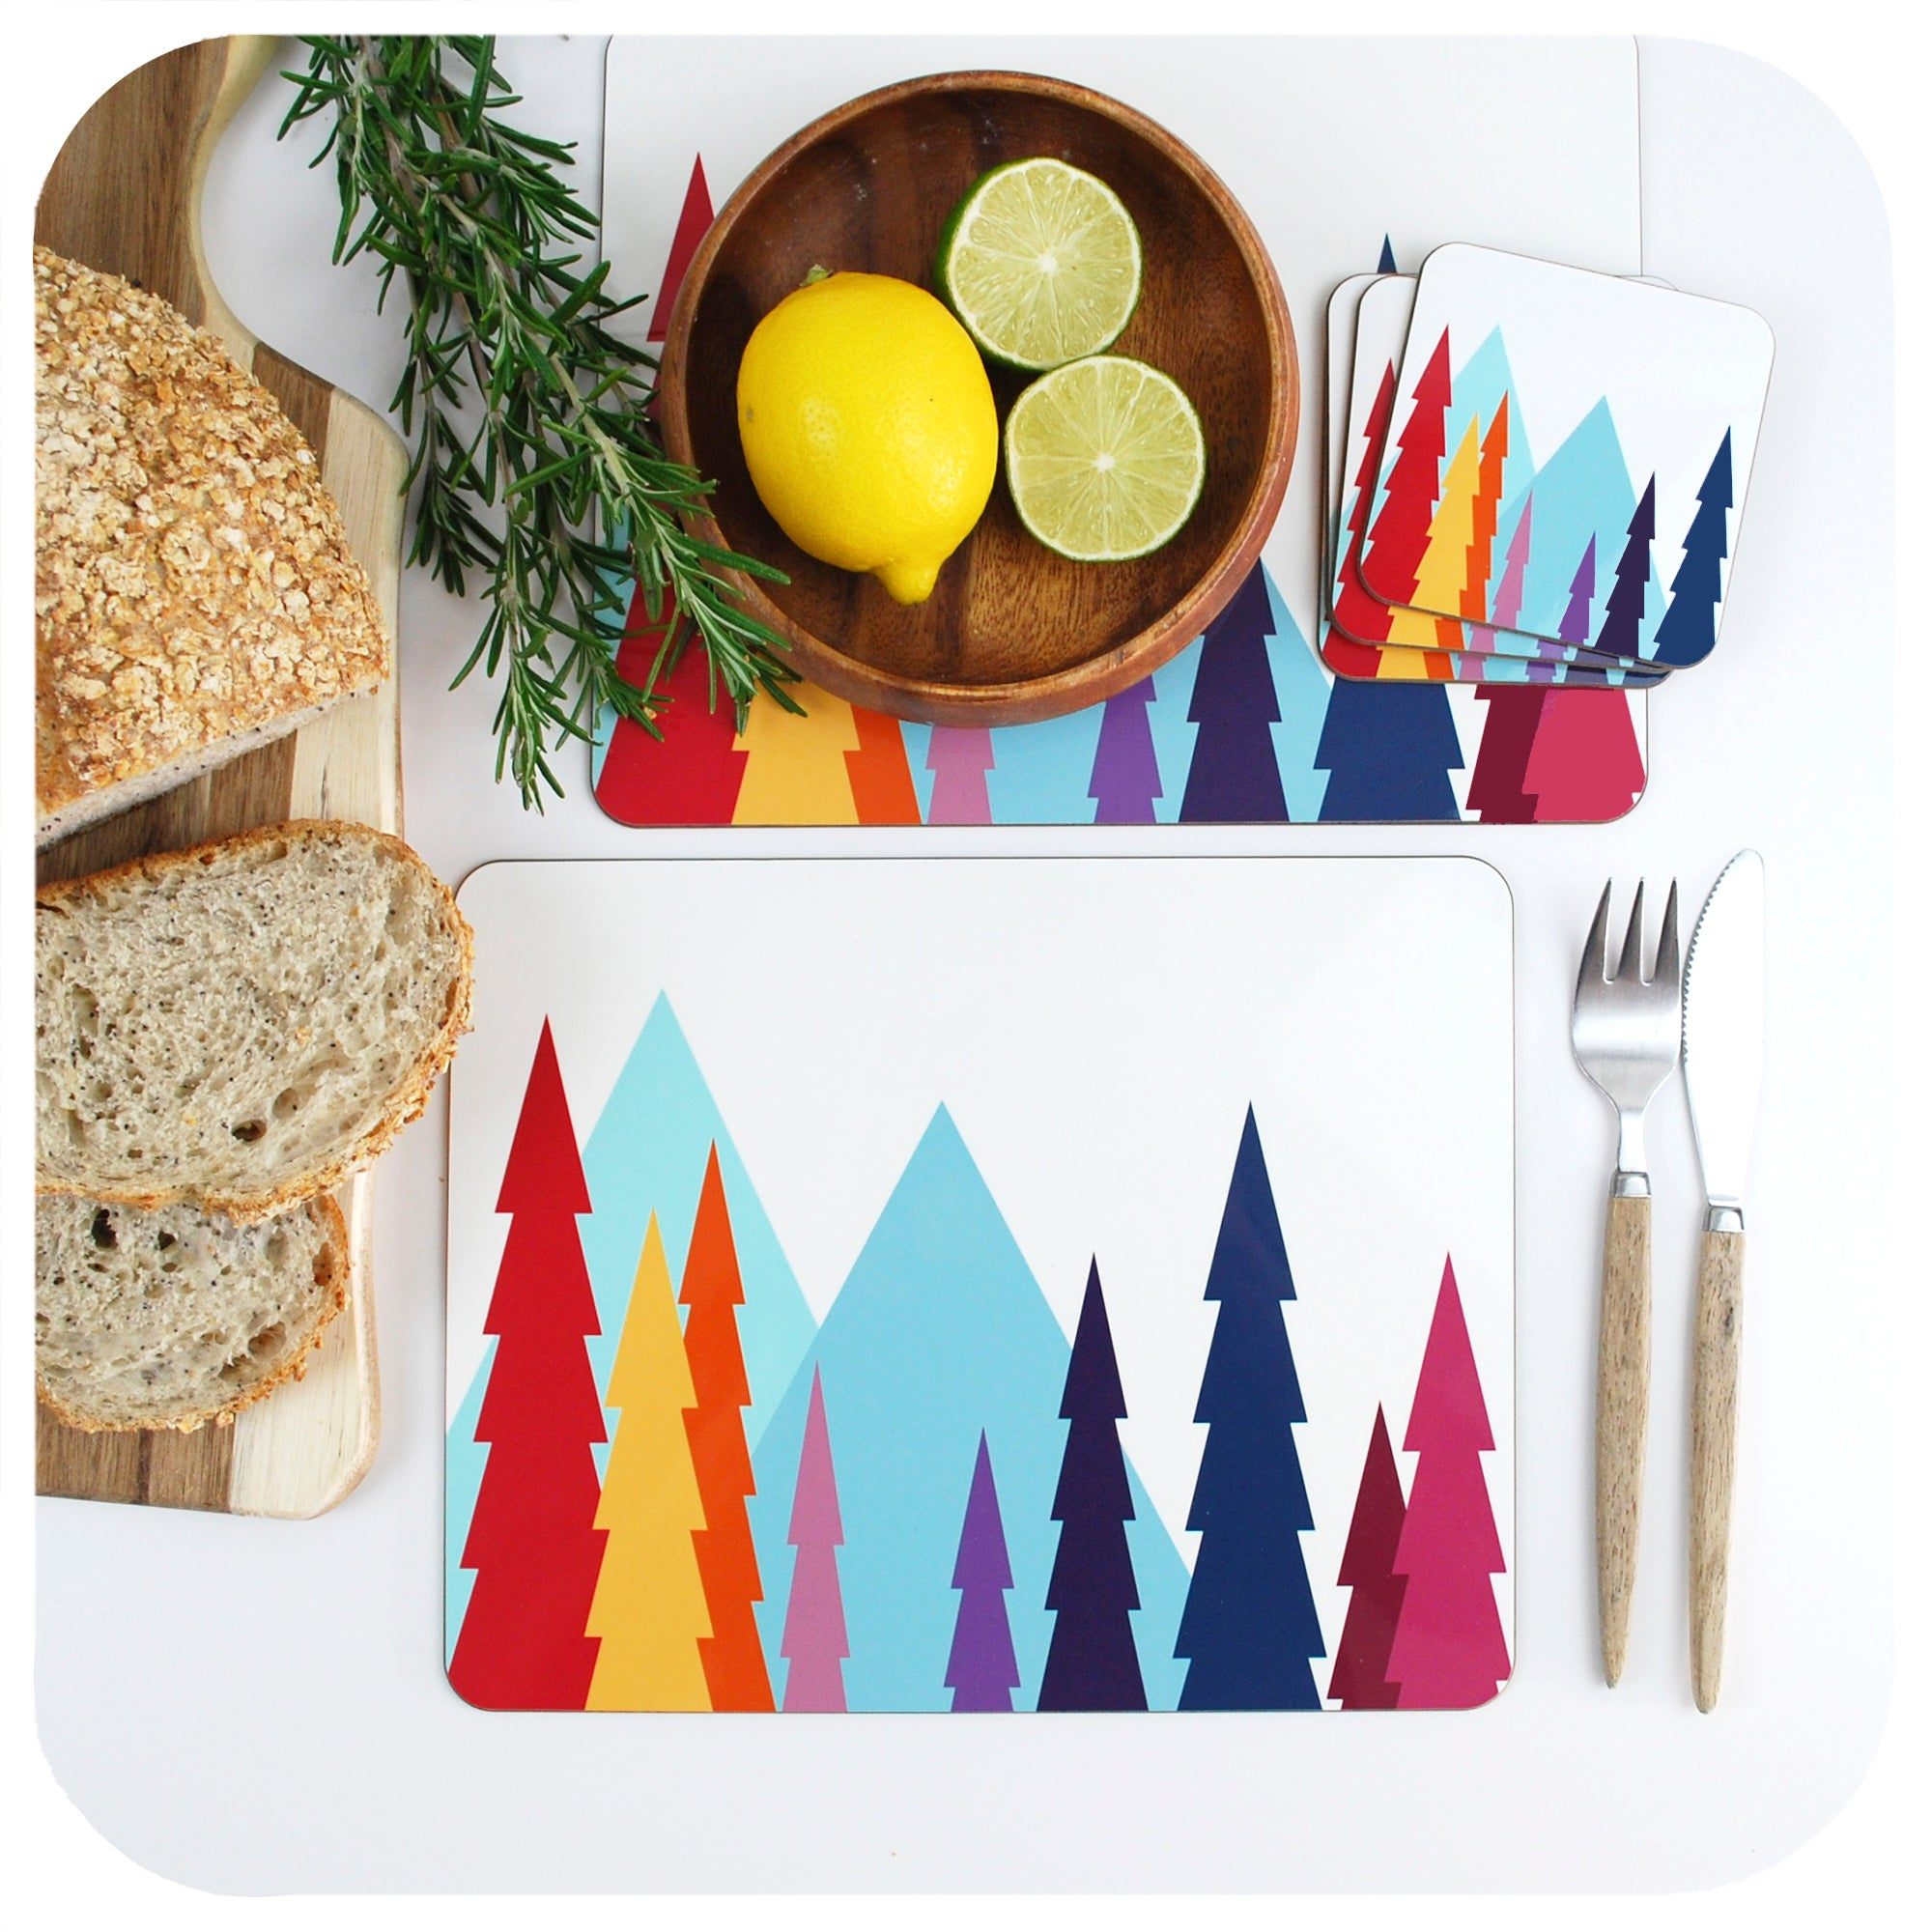 Nordic Trees Placemats and Coasters, Scandi style Tableware | The Inkabilly Emporium